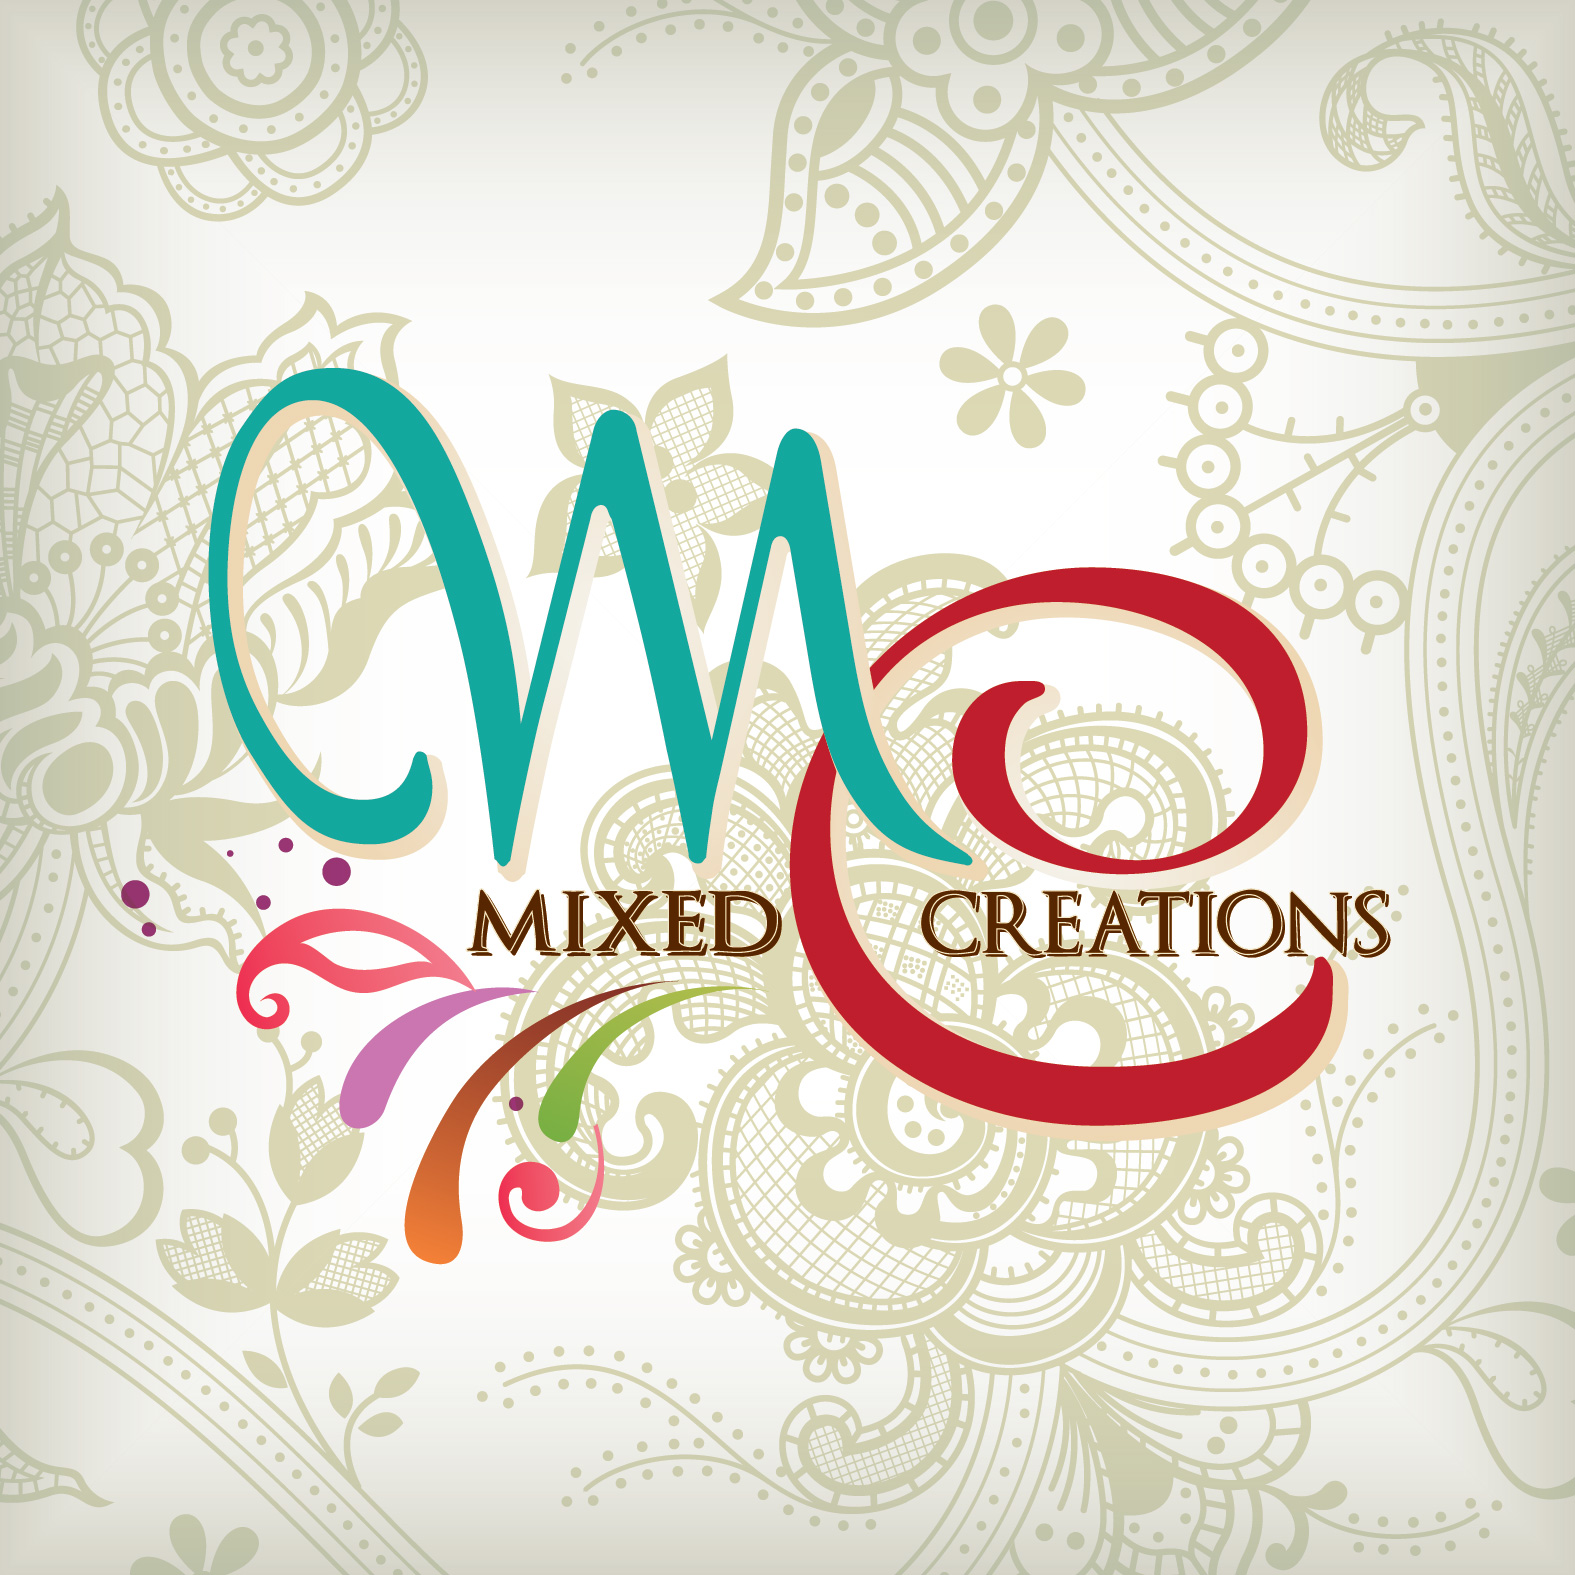 Mixed Creations